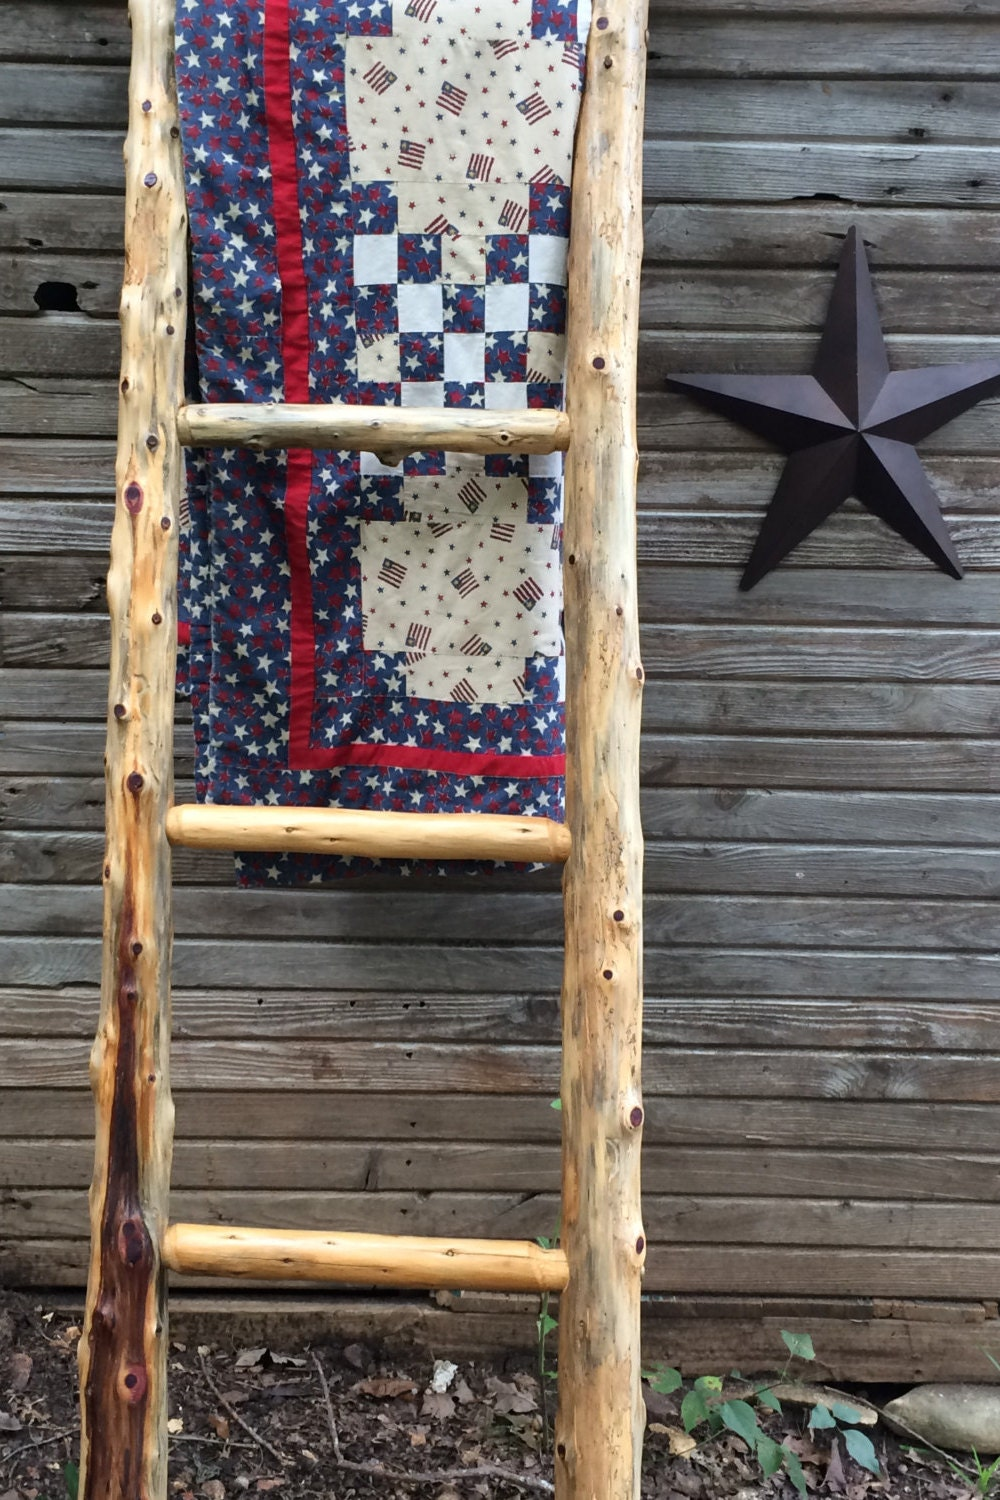 Log Quilt Ladder Rack - Quilt Display - Rustic Quilt Rack - Rug ... : quilt display ladder - Adamdwight.com